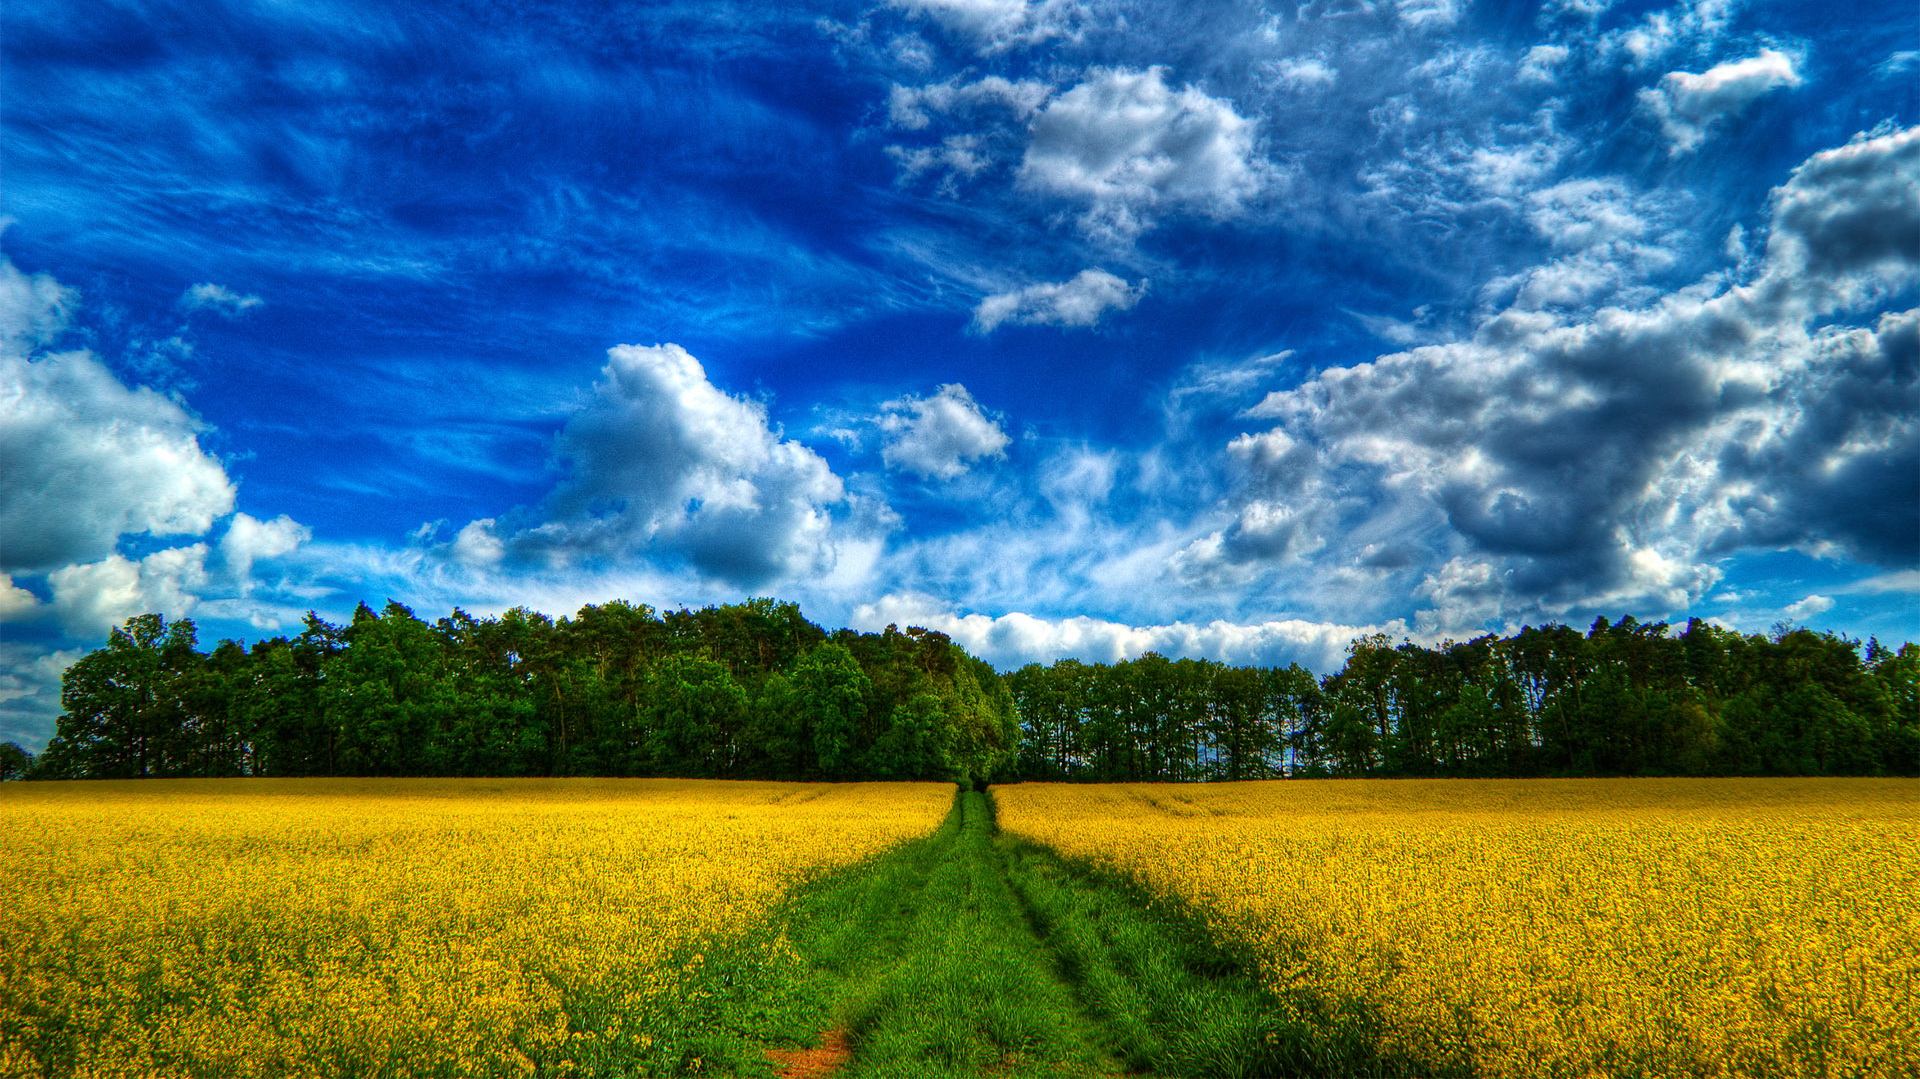 click to free download the wallpaper--Beautiful Scene of Flowers - Rape Flowers in Bloom, the Blue Sky, Green Trees Interspersed 1920X1080 free wallpaper download